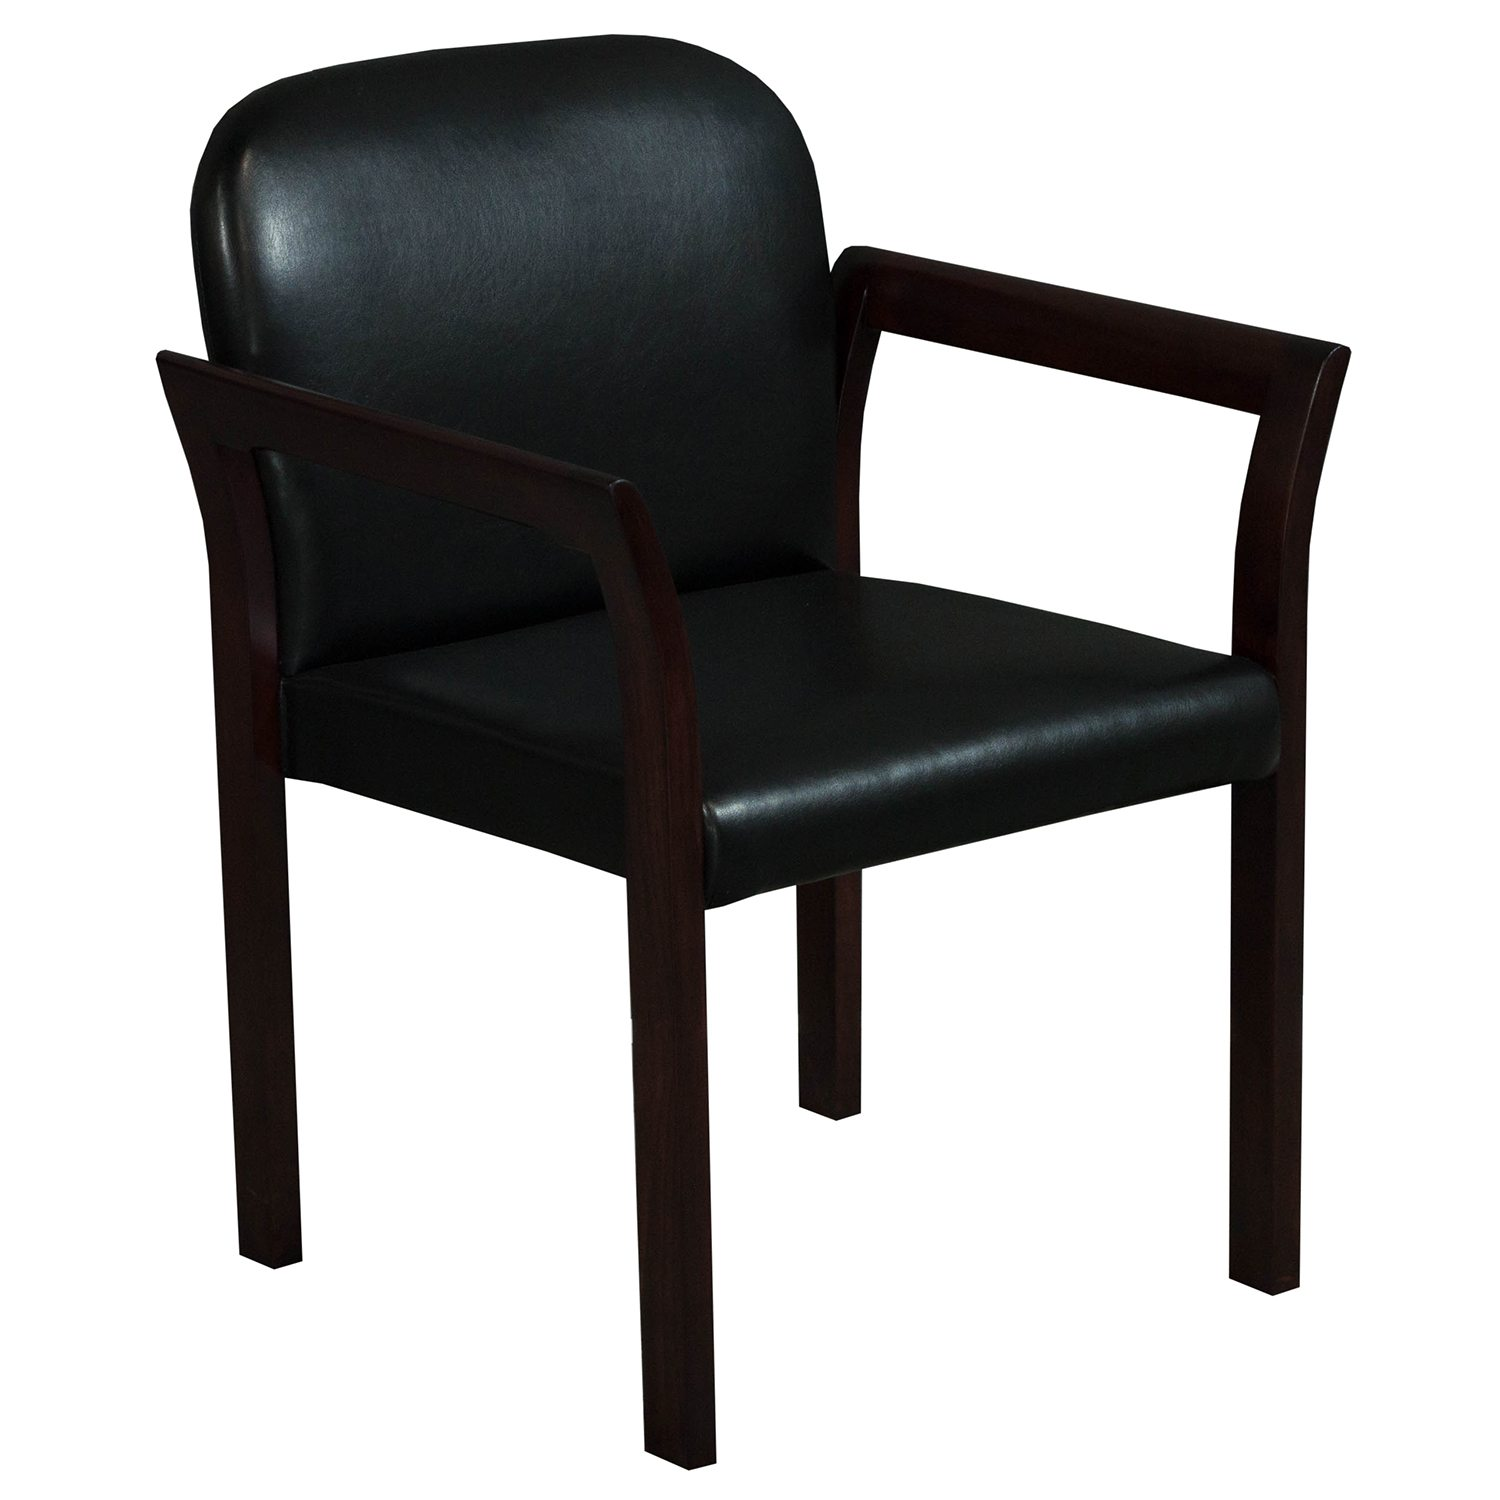 side chairs for office pottery barn kids anywhere chair slipcover gunlocke used mahogany leather stack black